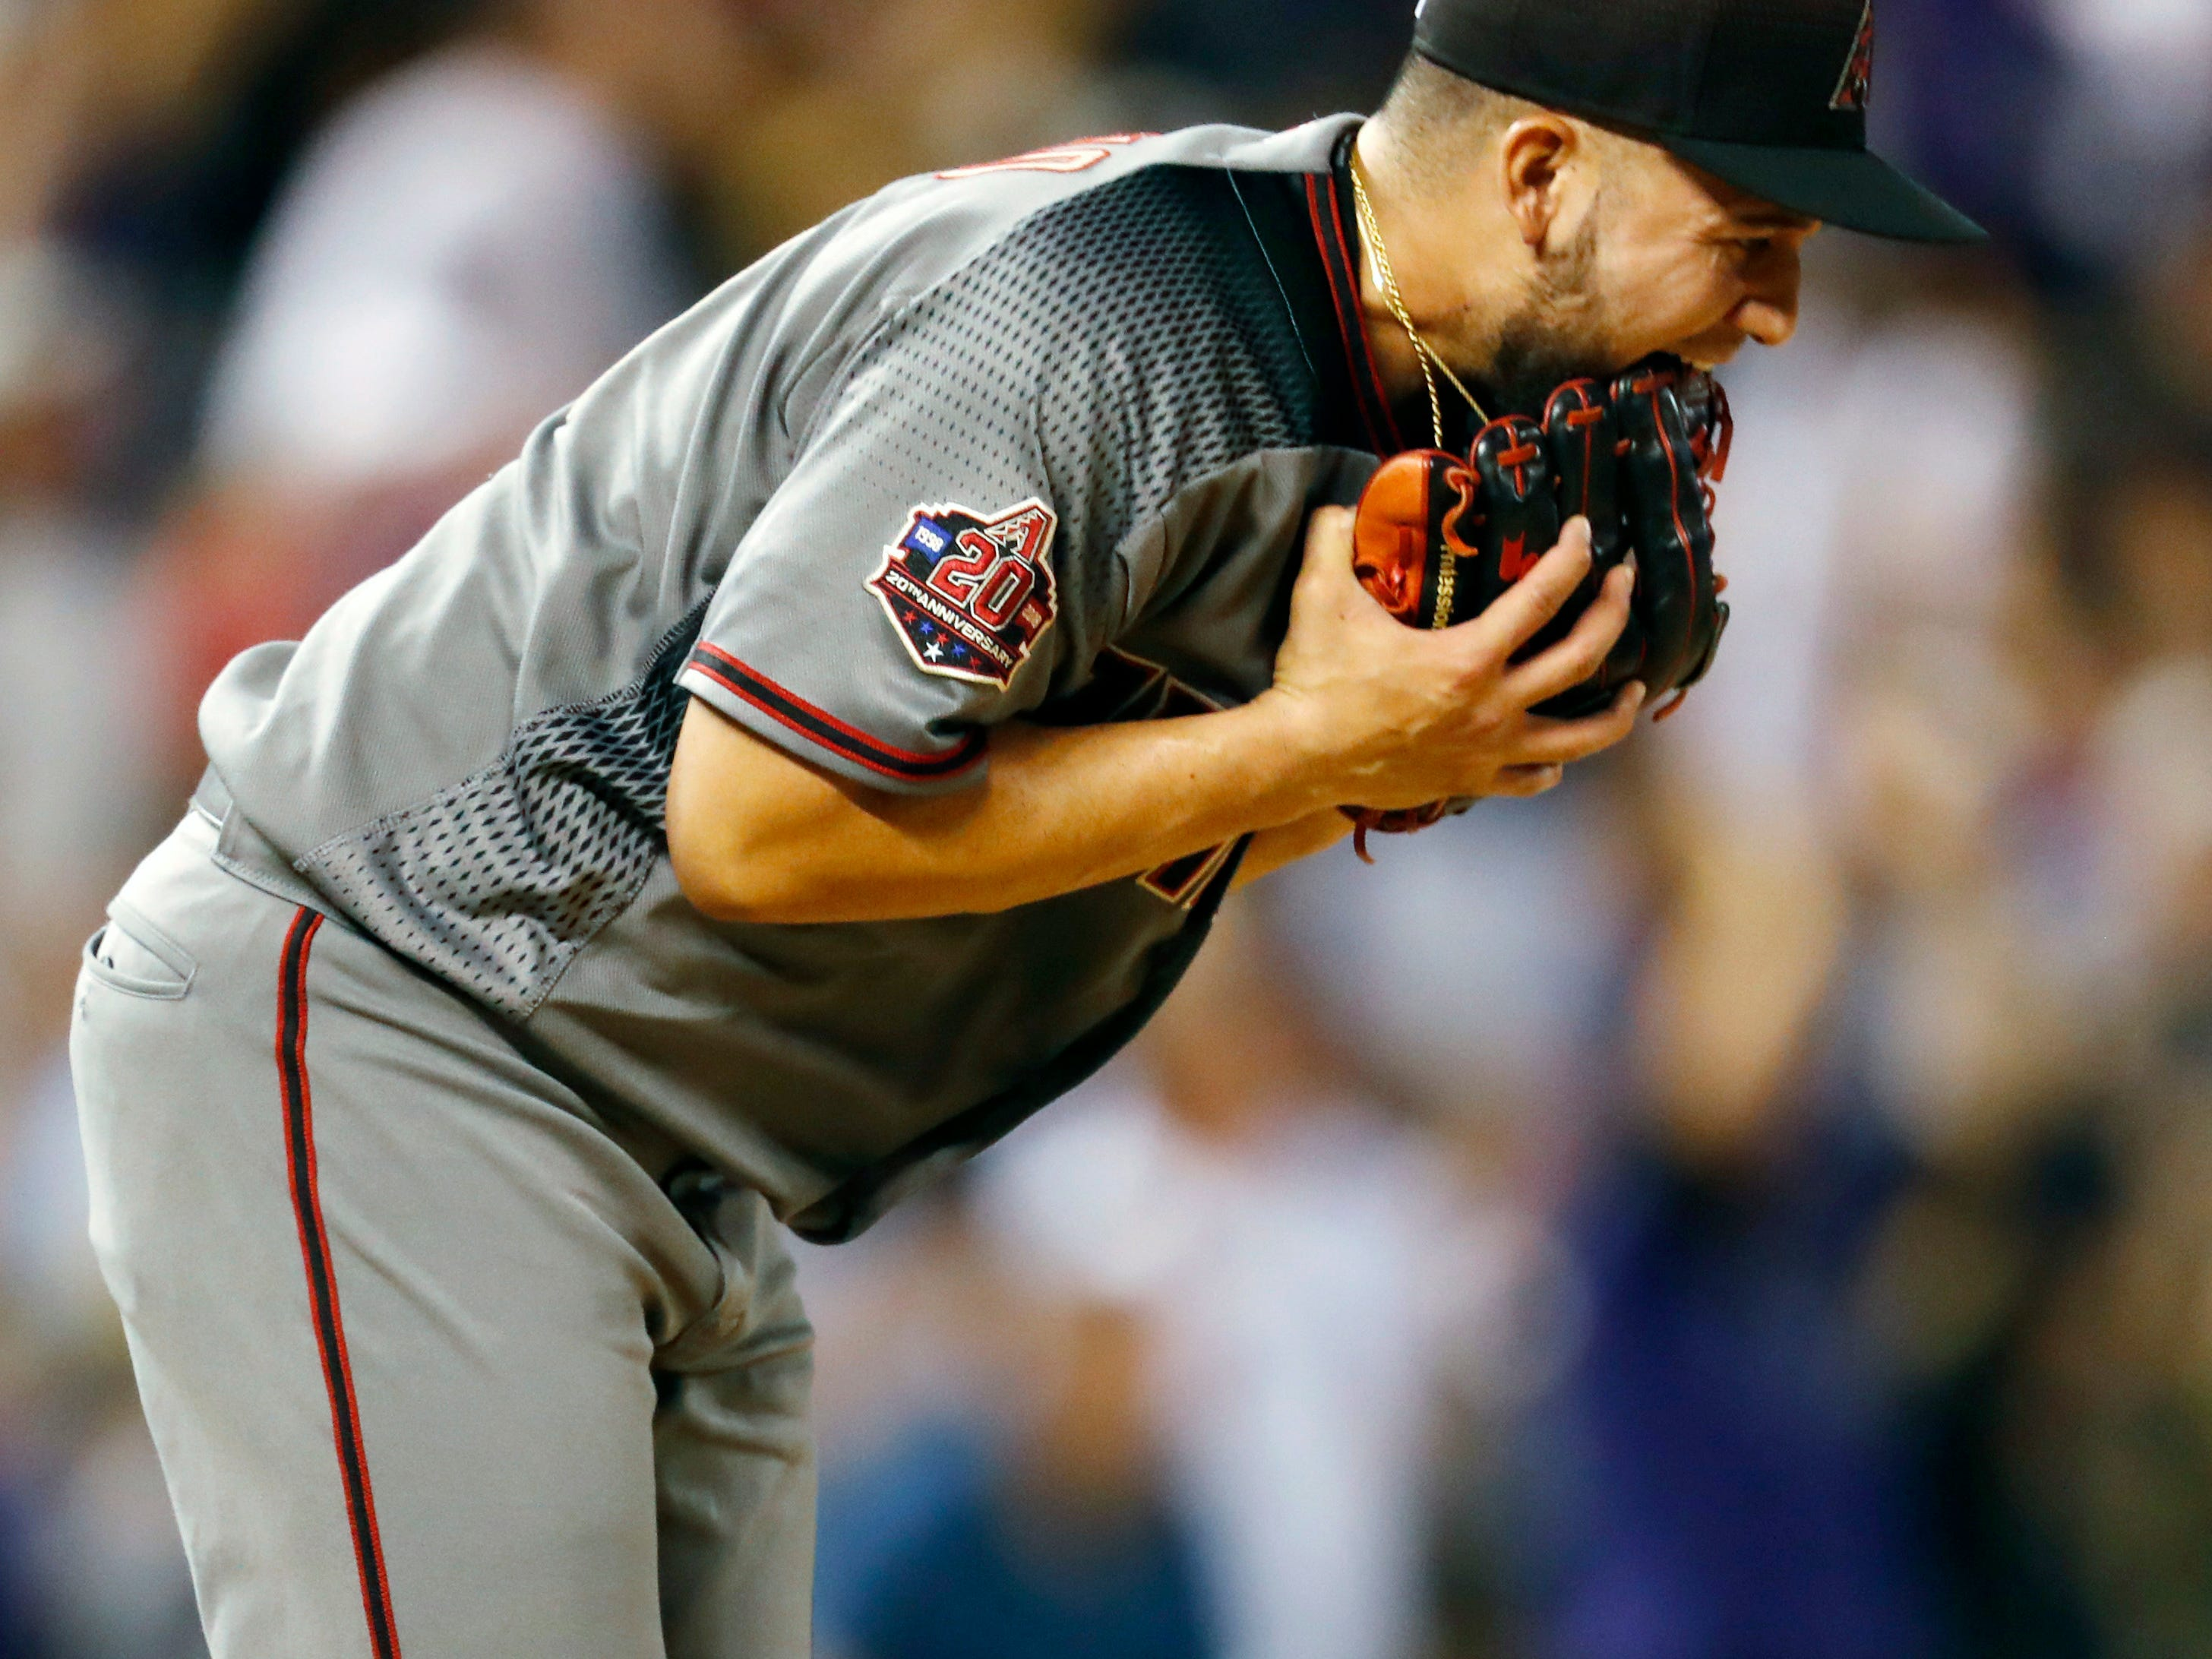 Arizona Diamondbacks relief pitcher Silvino Bracho bites his glove after giving up a three-run home run to Colorado Rockies' Trevor Story in the fifth inning of a baseball game Monday, Sept. 10, 2018, in Denver.